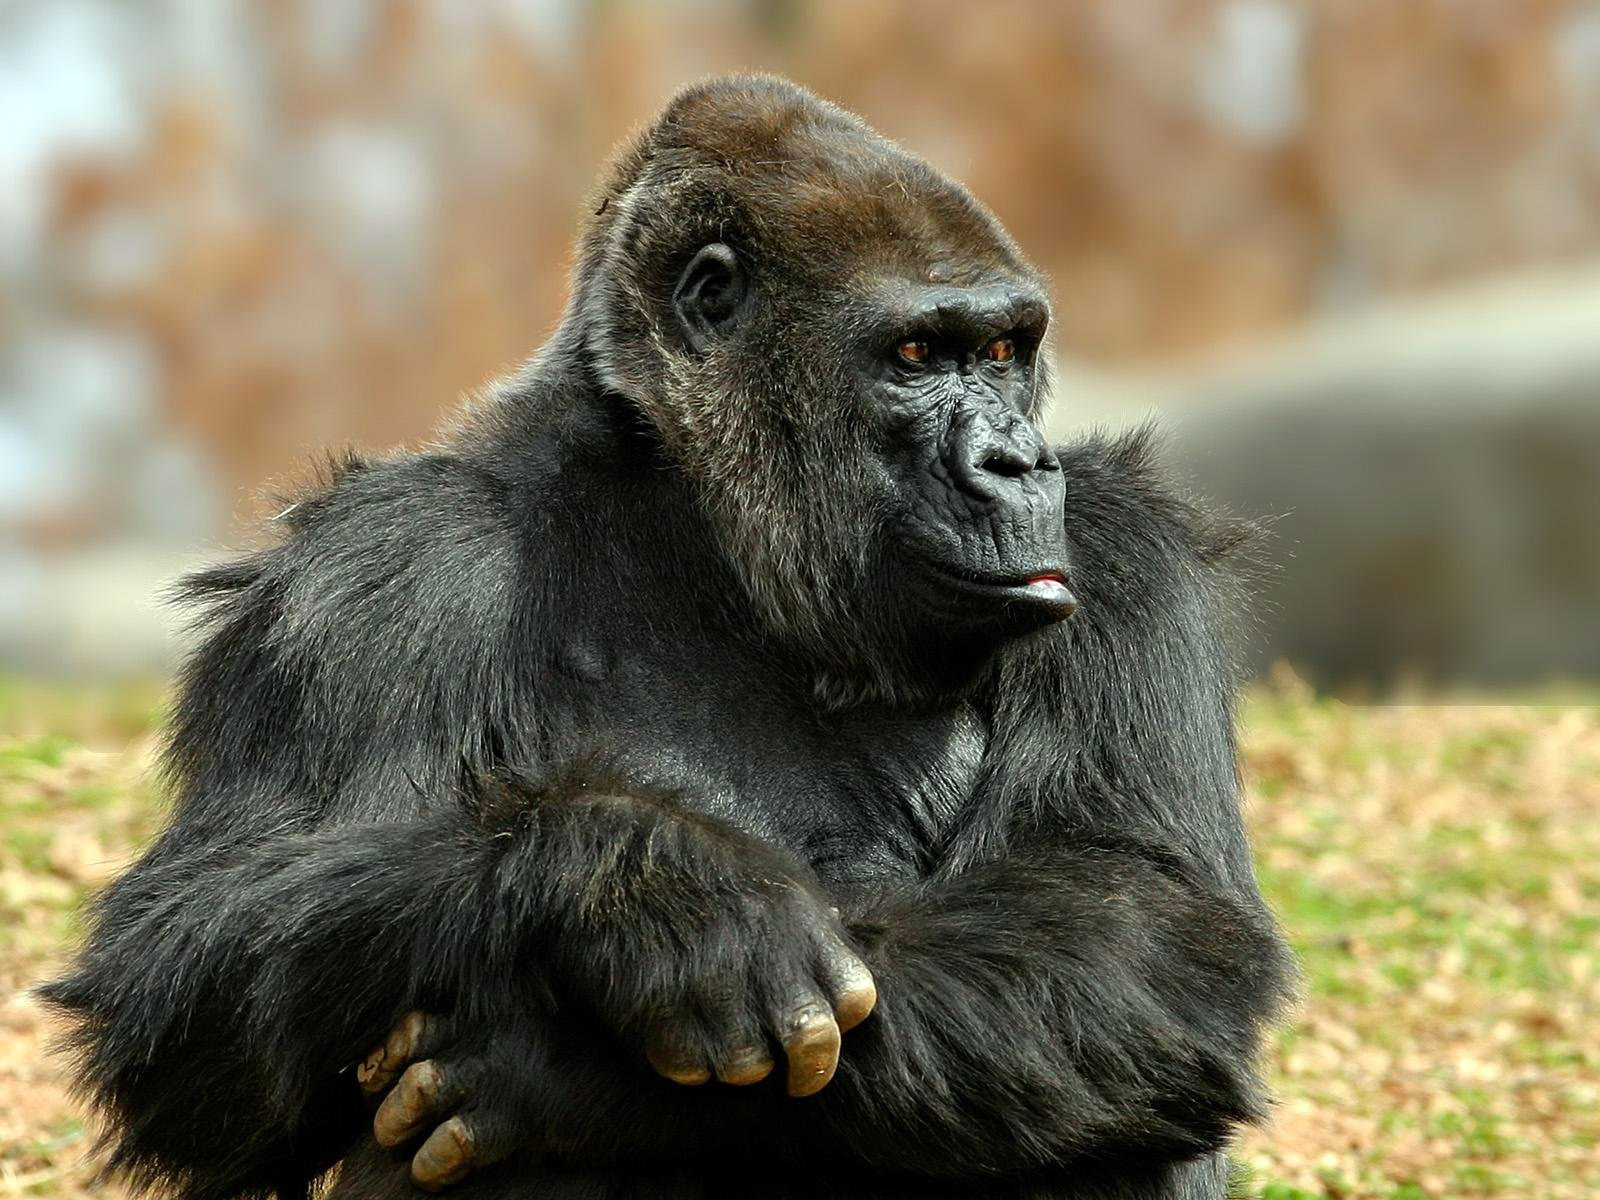 Cute Animals Love Wallpapers Gorilla Hd Wallpapers Hd Wallpapers